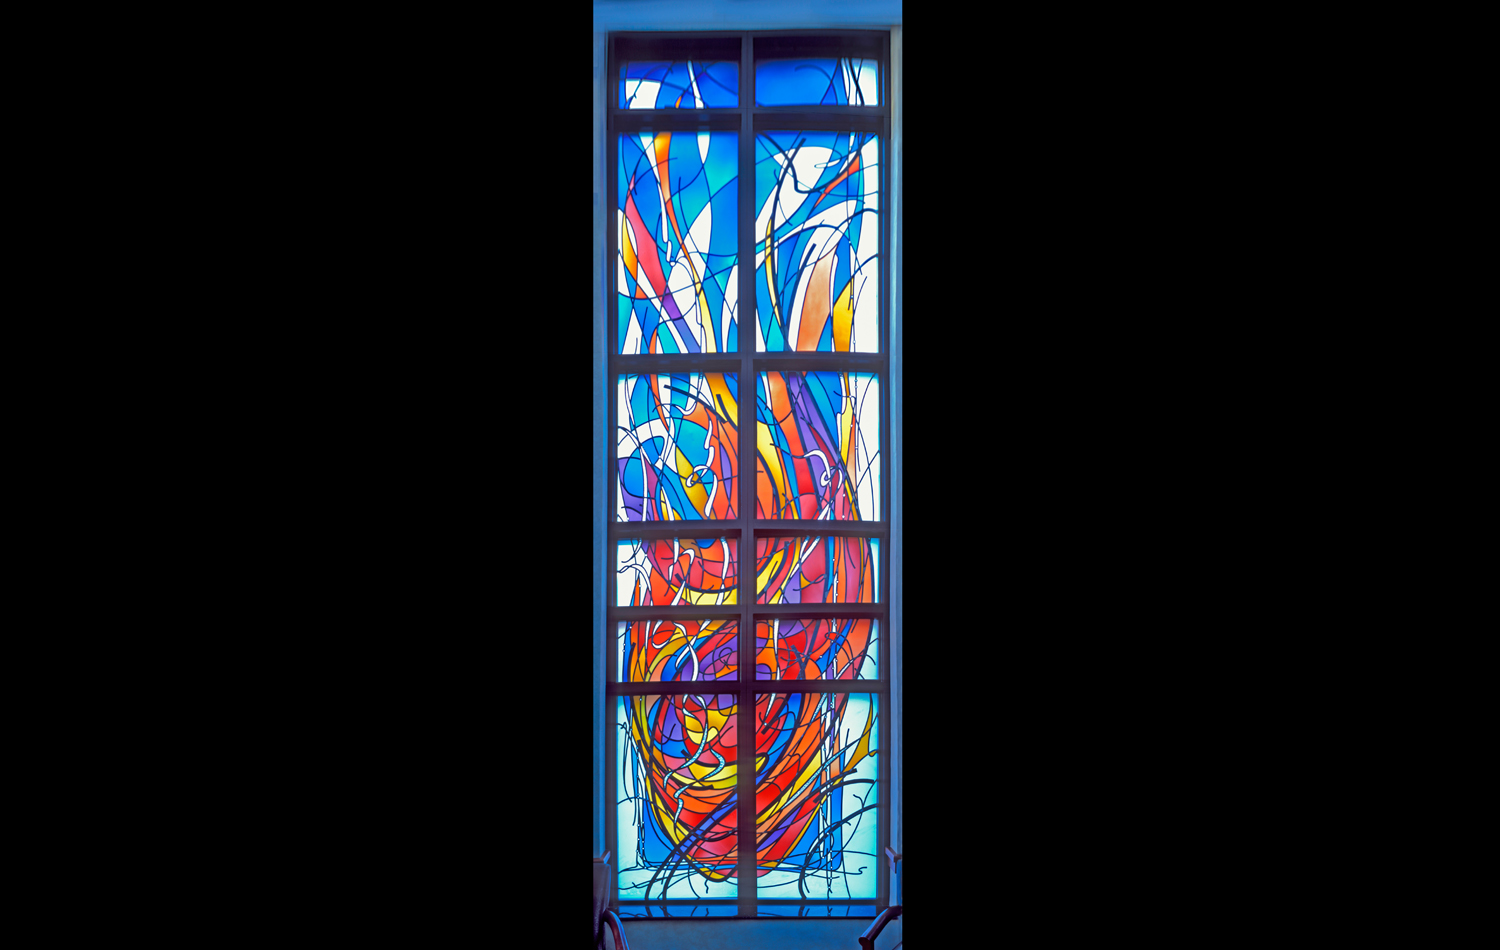 """""""Fire"""" Window: Fire embodies the very essence of spirituality, whether as a sacred religious symbol, or as a calming spiritual experience. Aspects of these concepts are woven into this window design. The seemingly spontaneous movement within the design suggests that the Holy Spirit is moving within and through us, empowering us with its presence. The vertical movement of line and color guides our eyes heavenward, reminding us to take our concerns to God in prayer."""